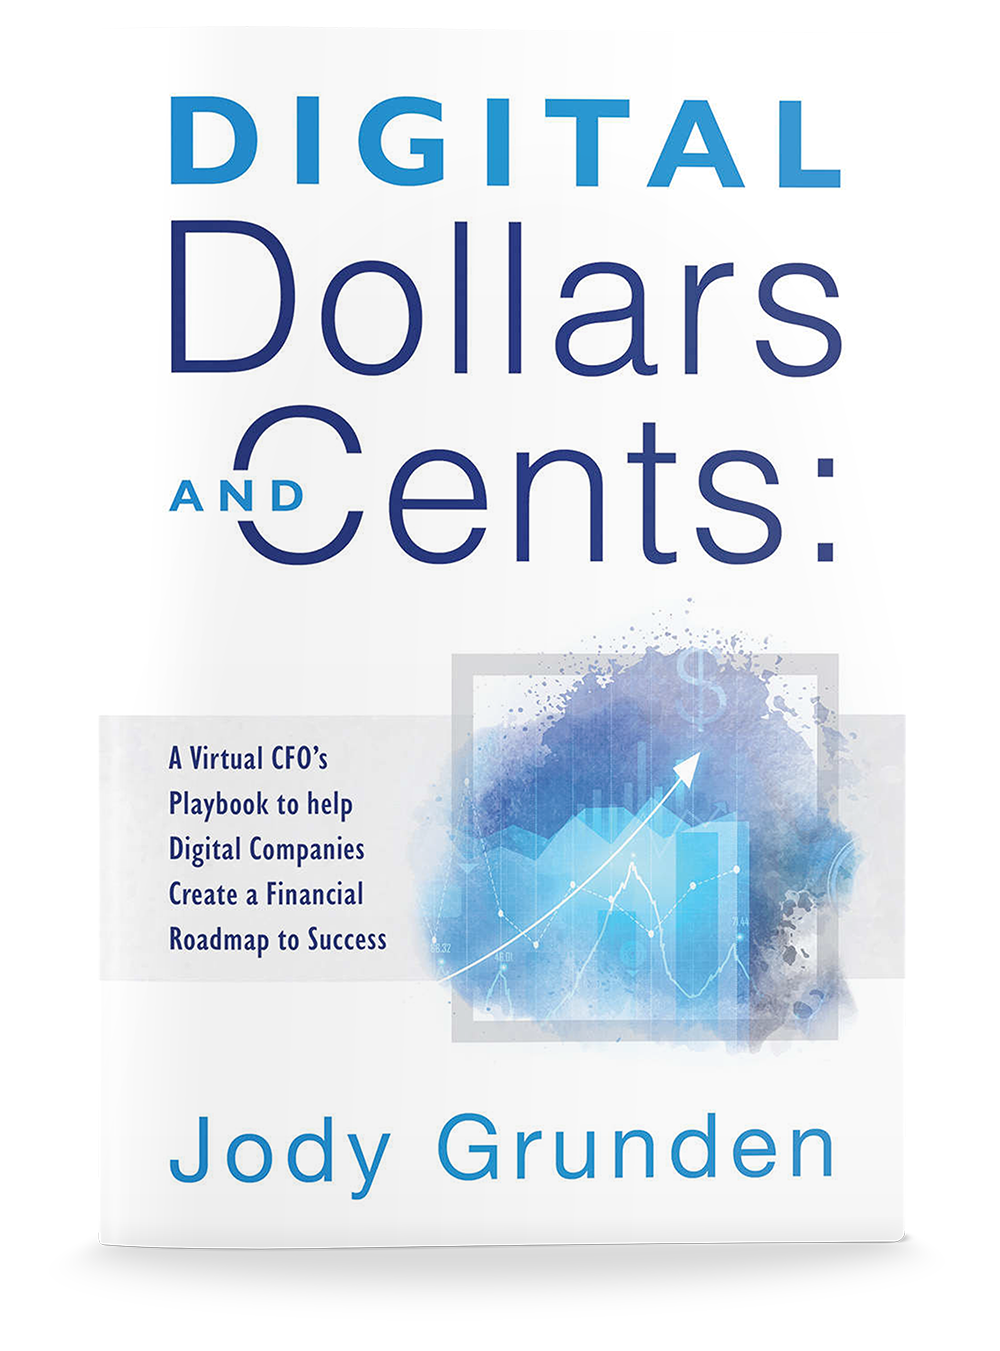 Digital Dollars and Cents by Jody Grunden